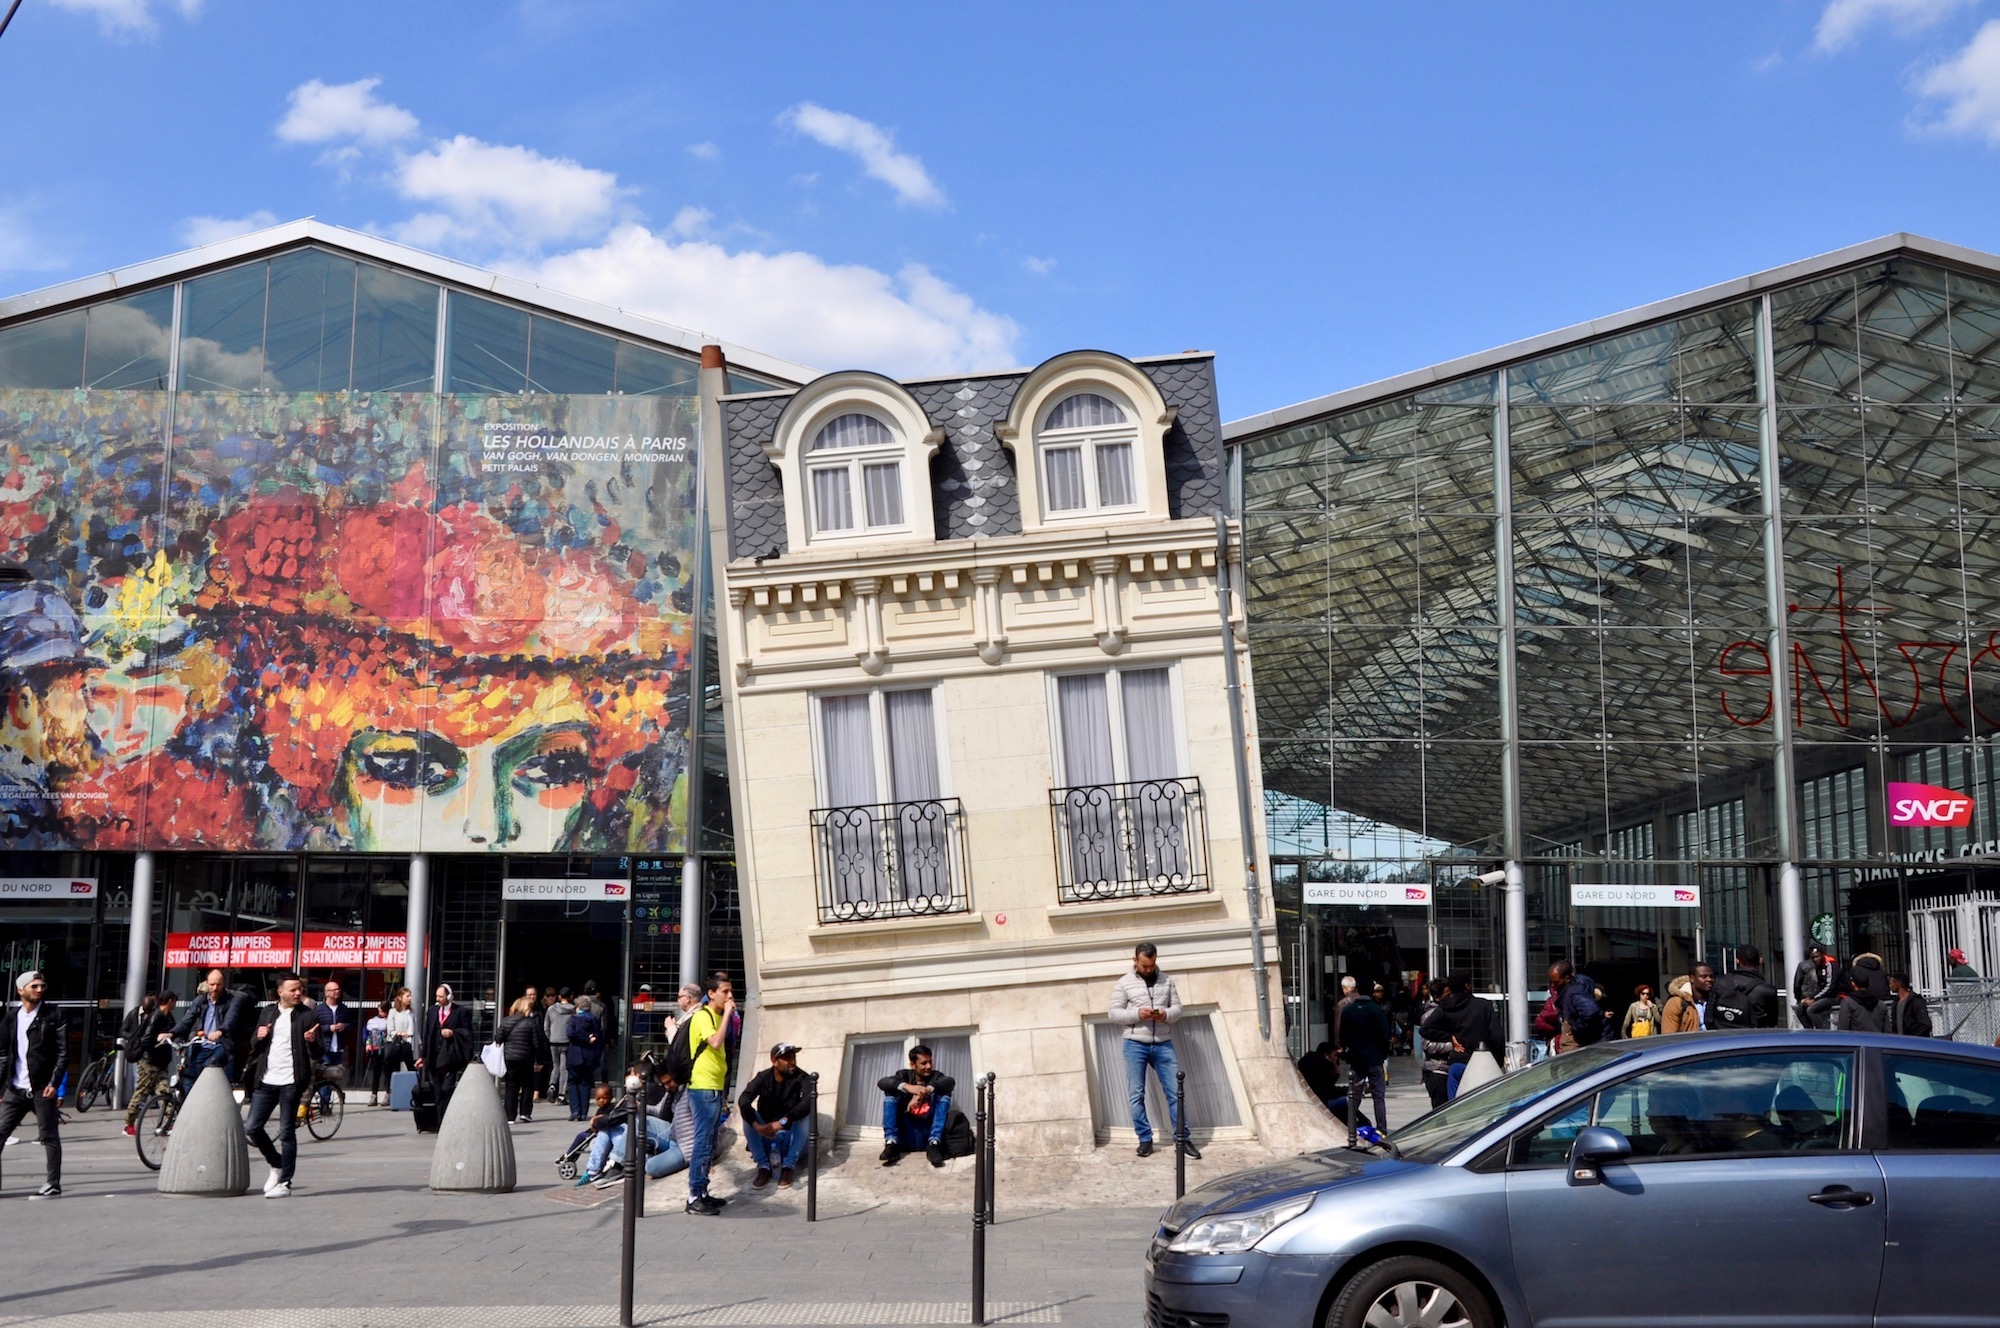 Gare du Nord and its environs are in the midst of an exciting transformation and for the 200 million travelers it serves annually, it's not a moment too soon.